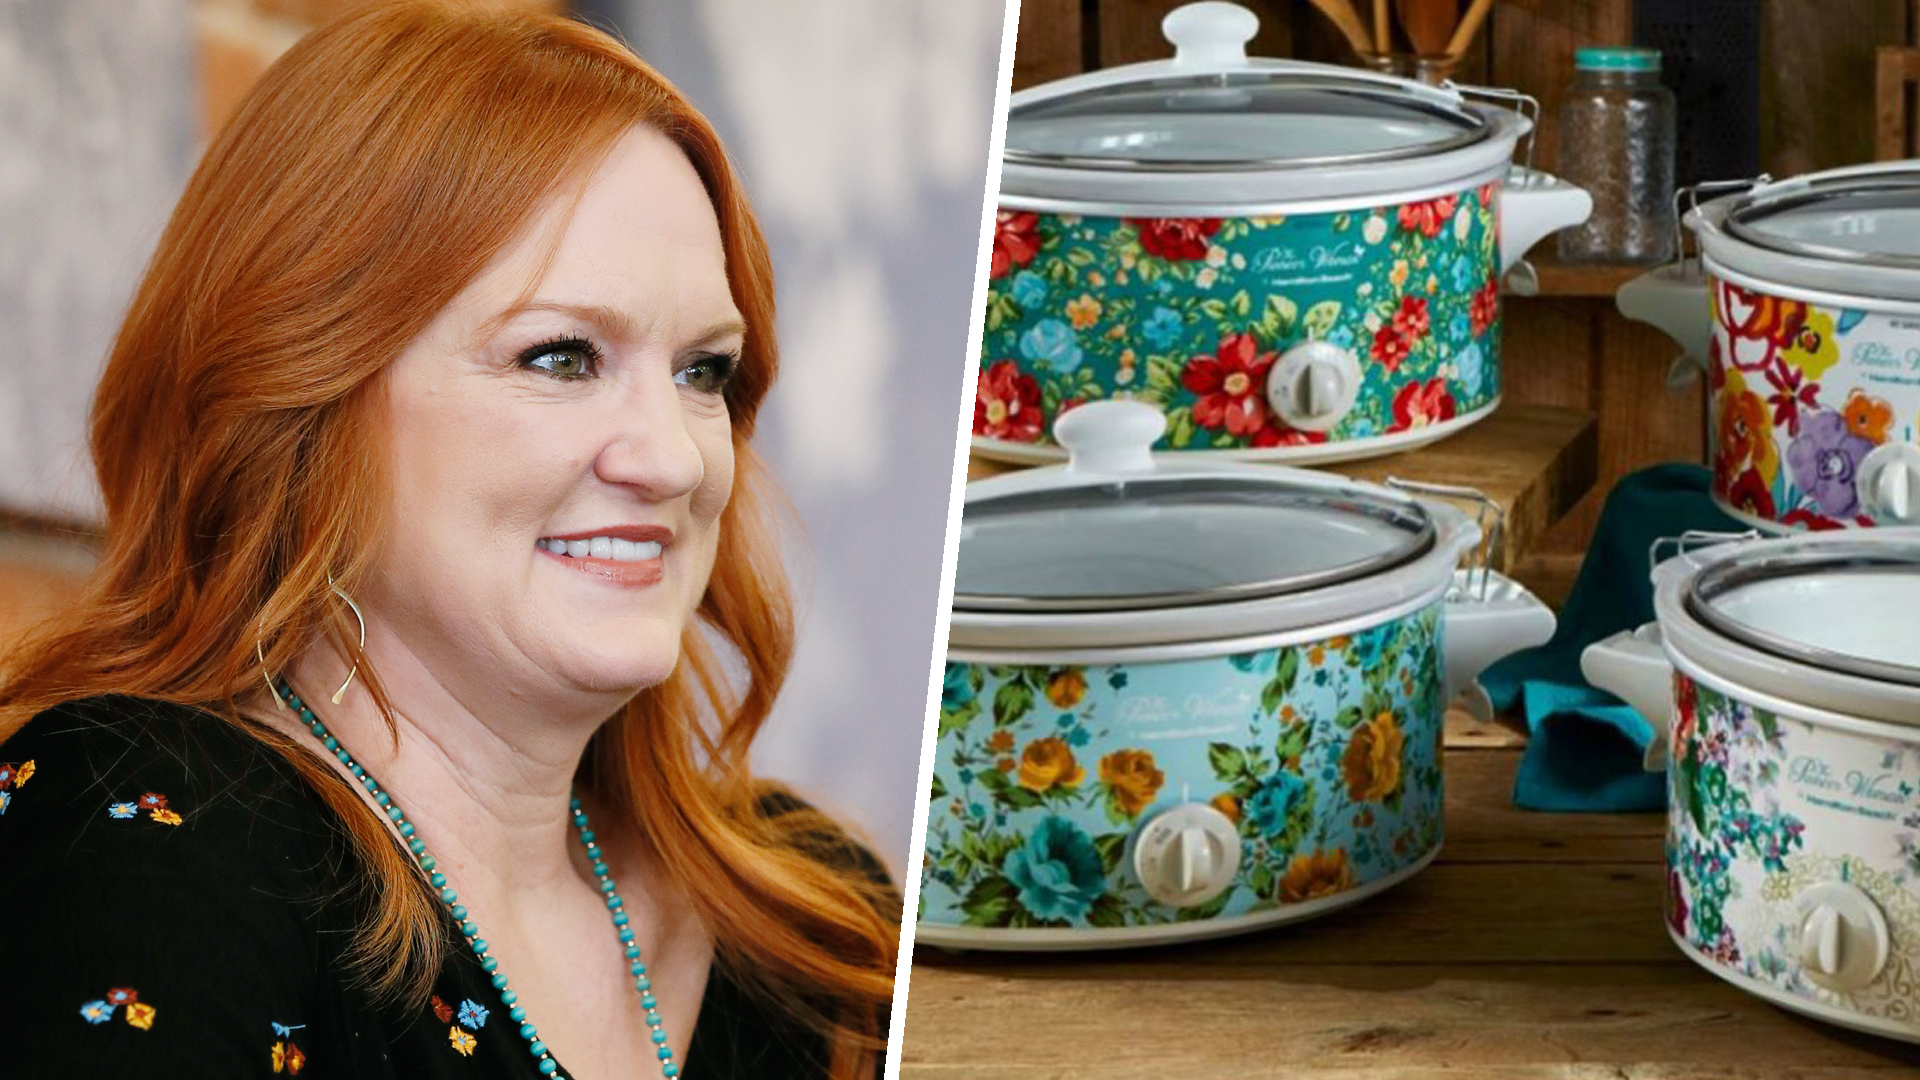 39 Pioneer Woman 39 Ree Drummond 39 S New Slow Are Cookers